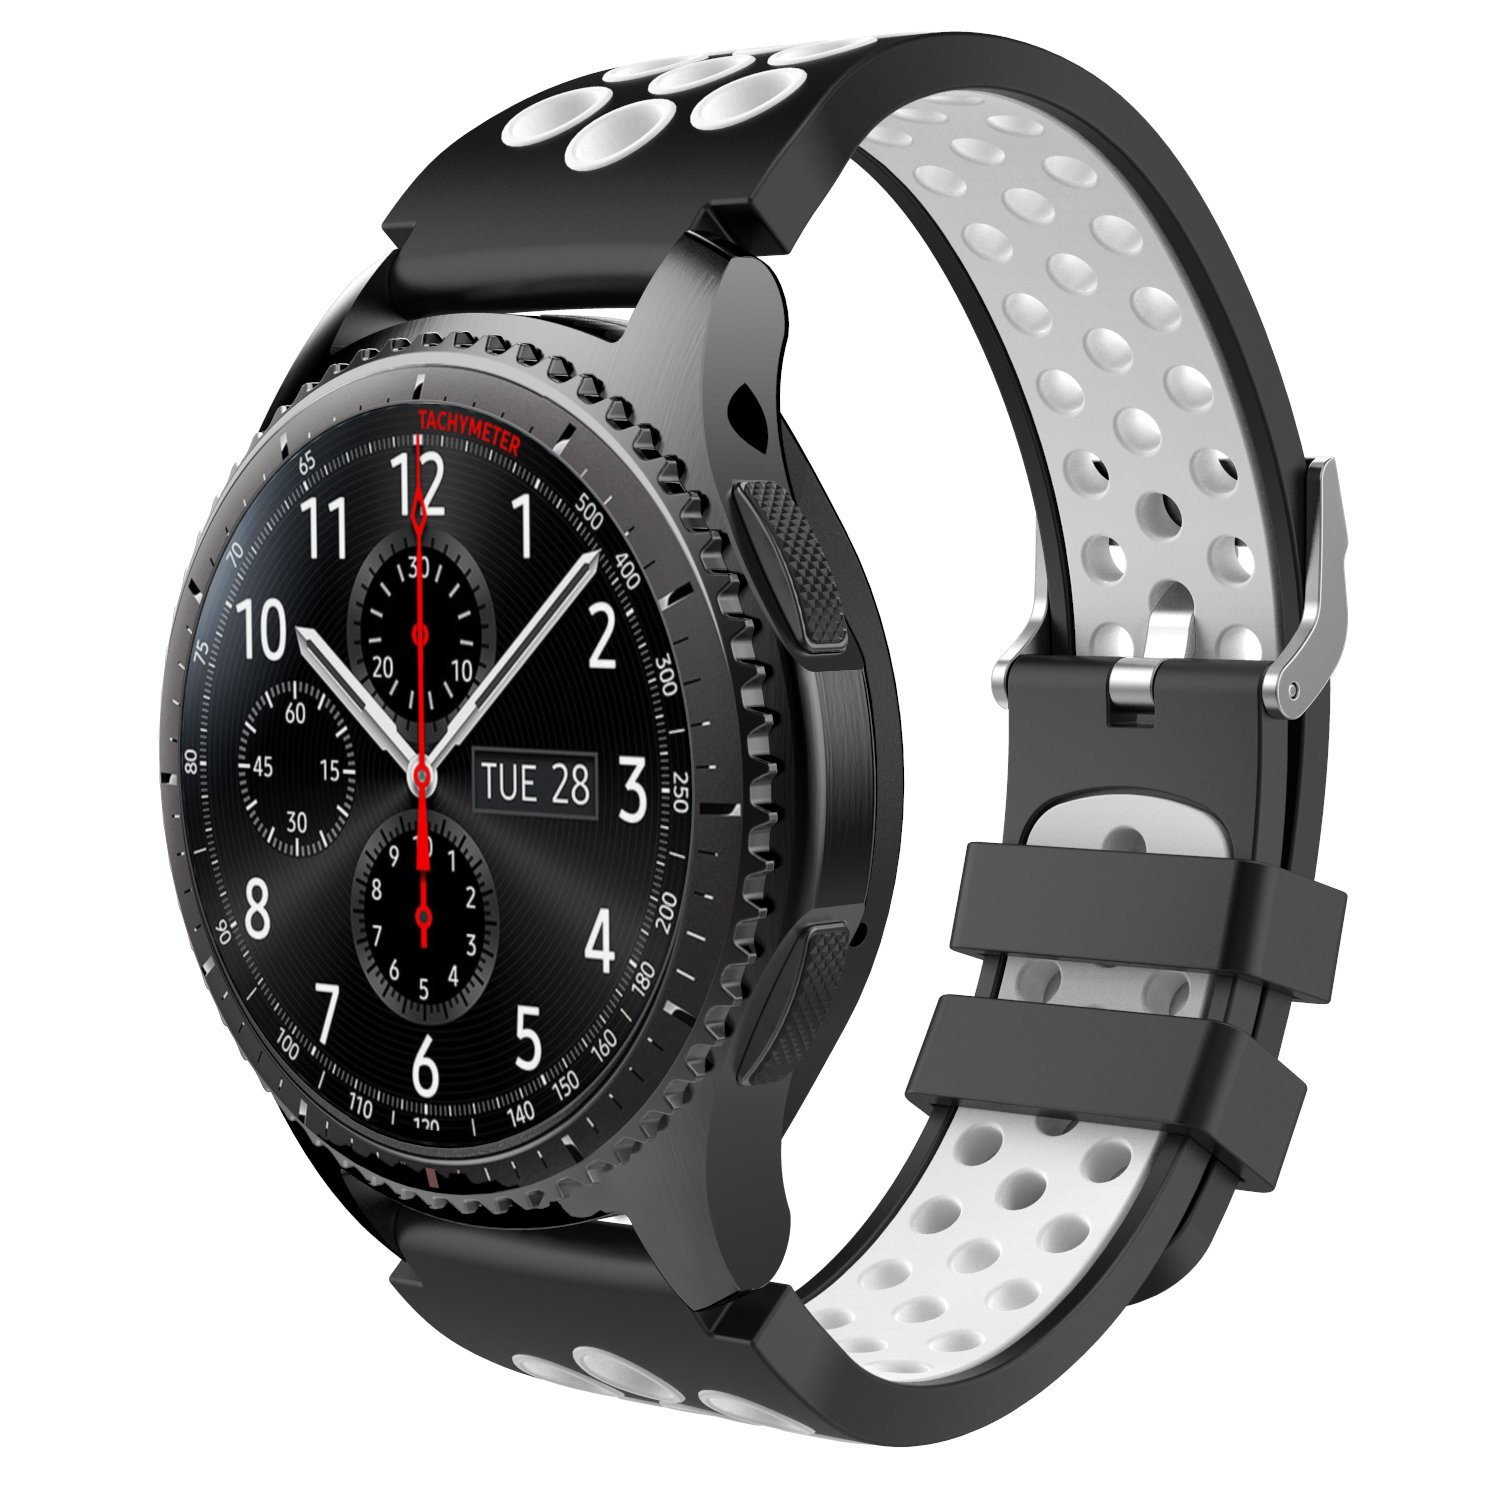 TiMOVO Sport Band Fit Samsung Gear S3 / Galaxy Watch 46mm, Perforated Silicone Replacement Strap Compatible with Samsung Gear S3 Frontier, S3 Classic, ...